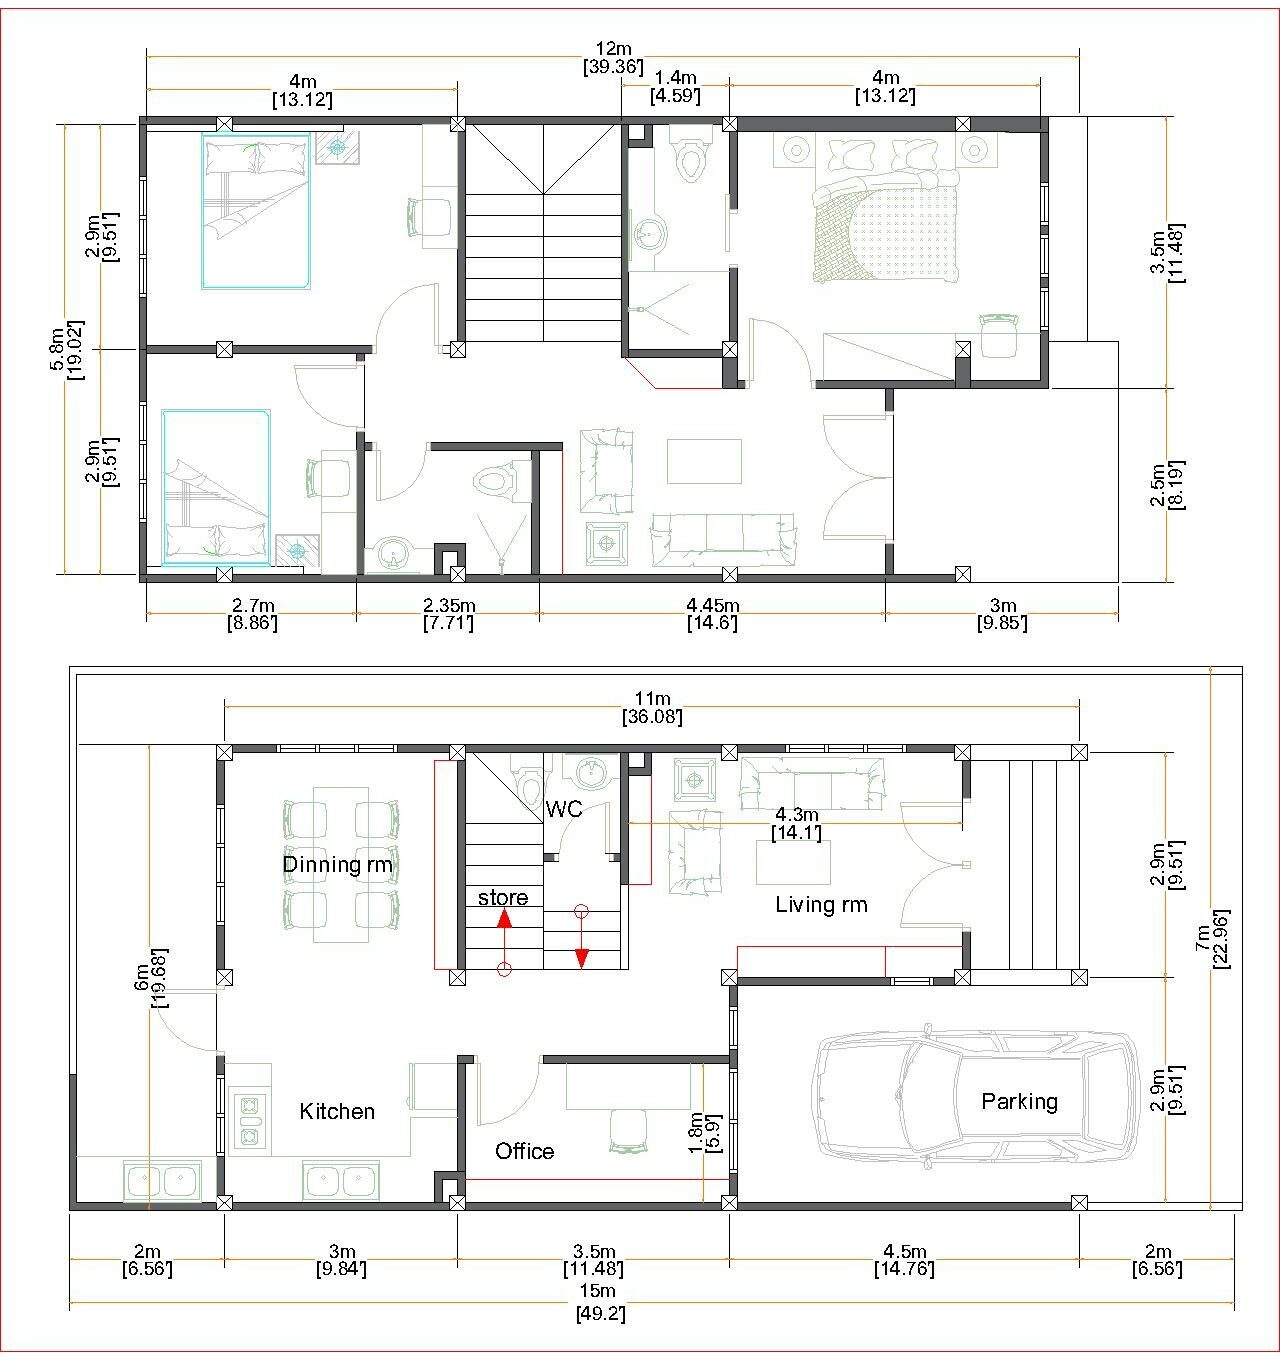 House Plans 7x15m with 3 Bedrooms floor plan FLOOR PLAN